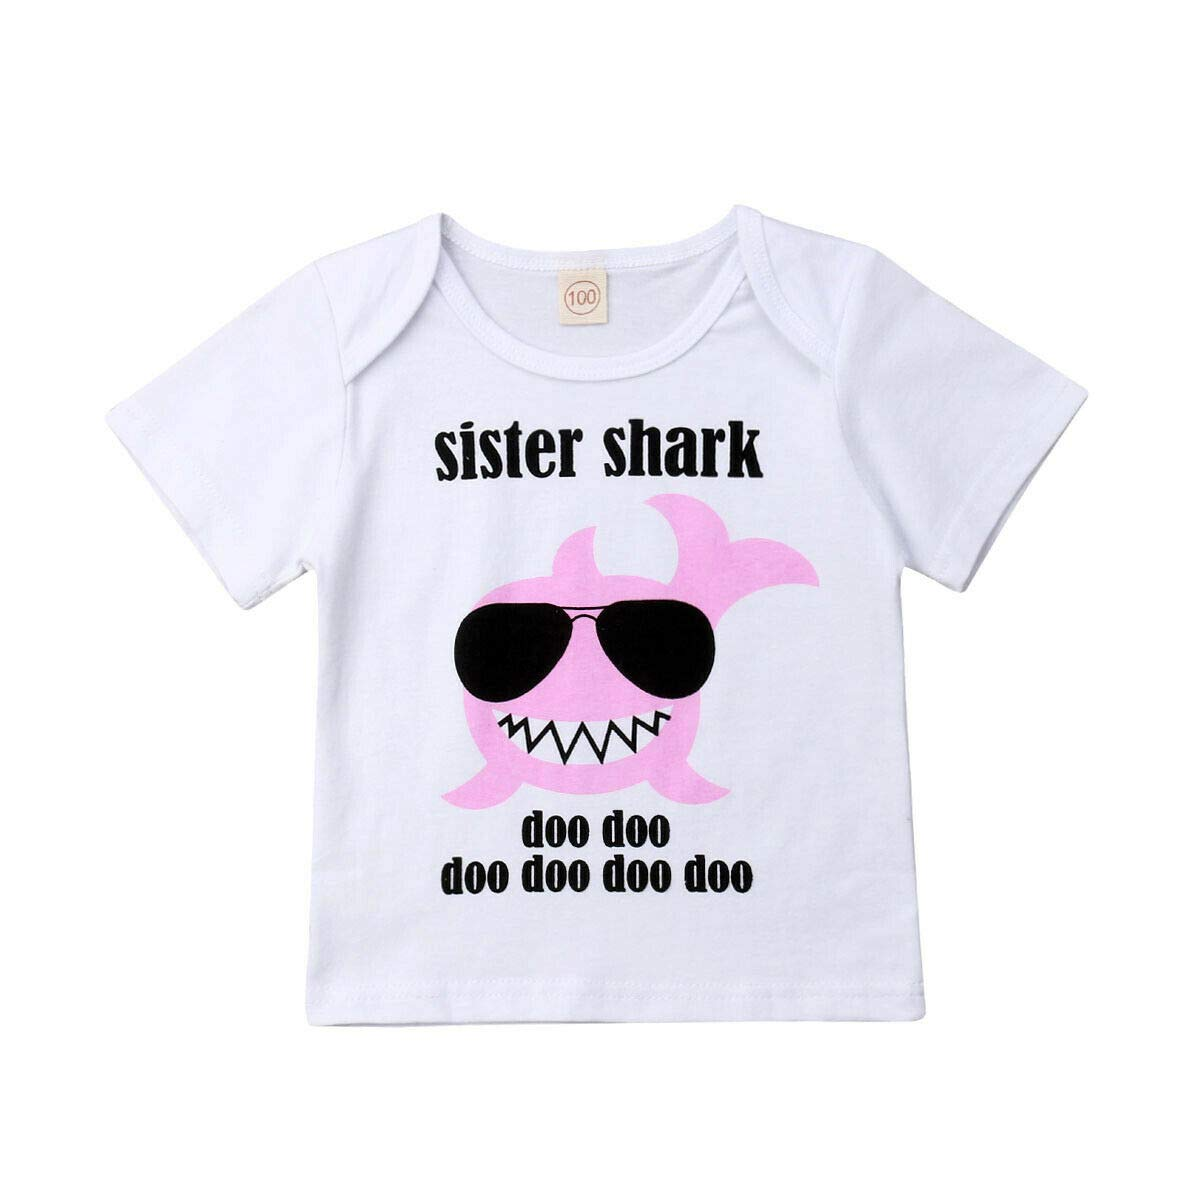 Baby Toddlers Boys Girls Baby Shark Clothes Big Sister Shark Top Tees Lil Brother Romper Matching Outfits